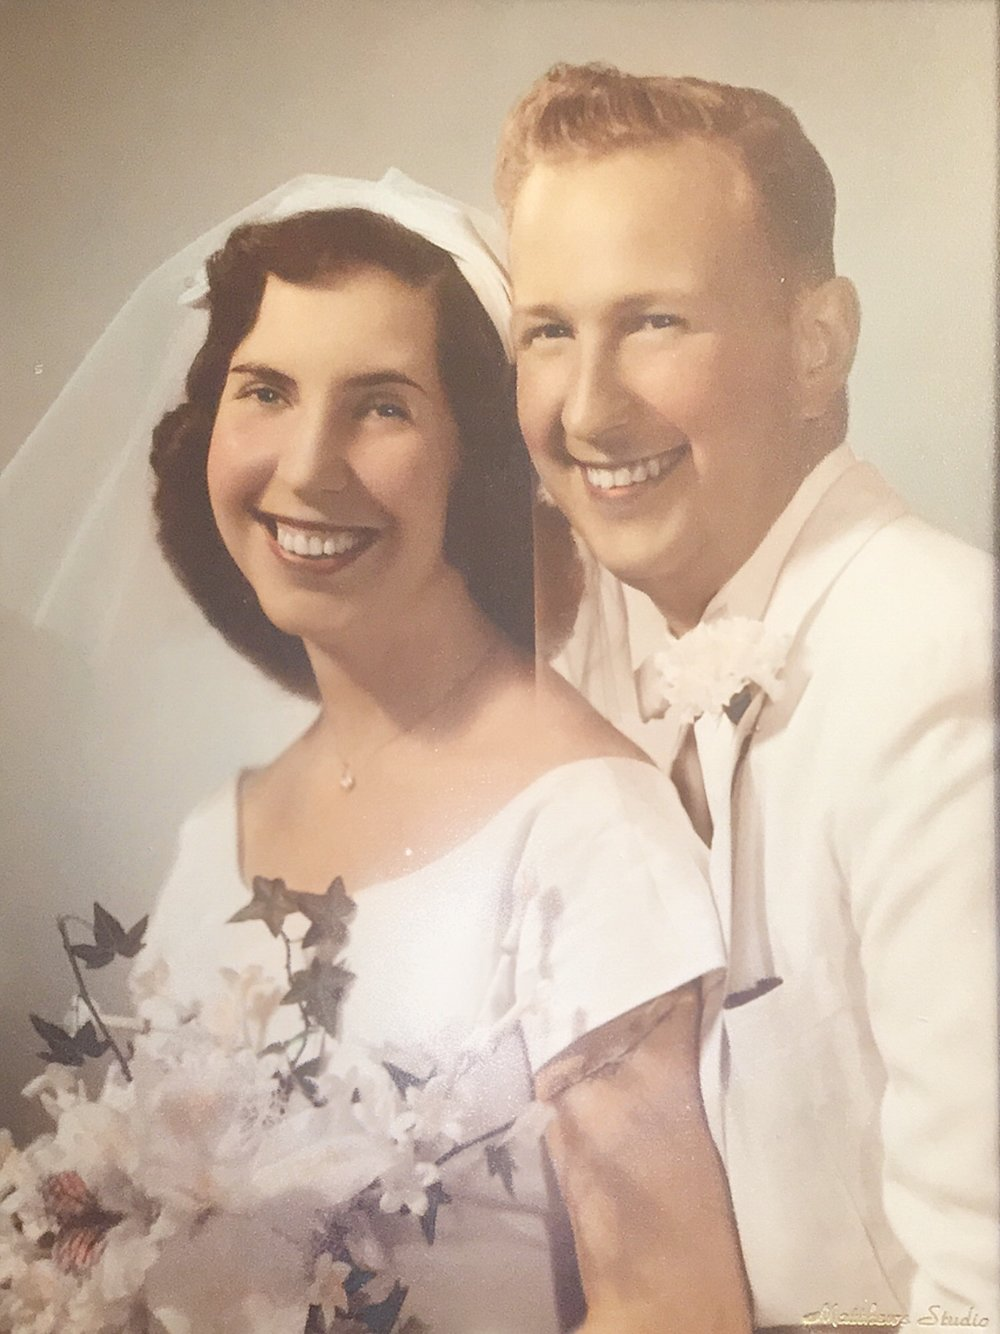 My grandparents on their wedding day in 1960